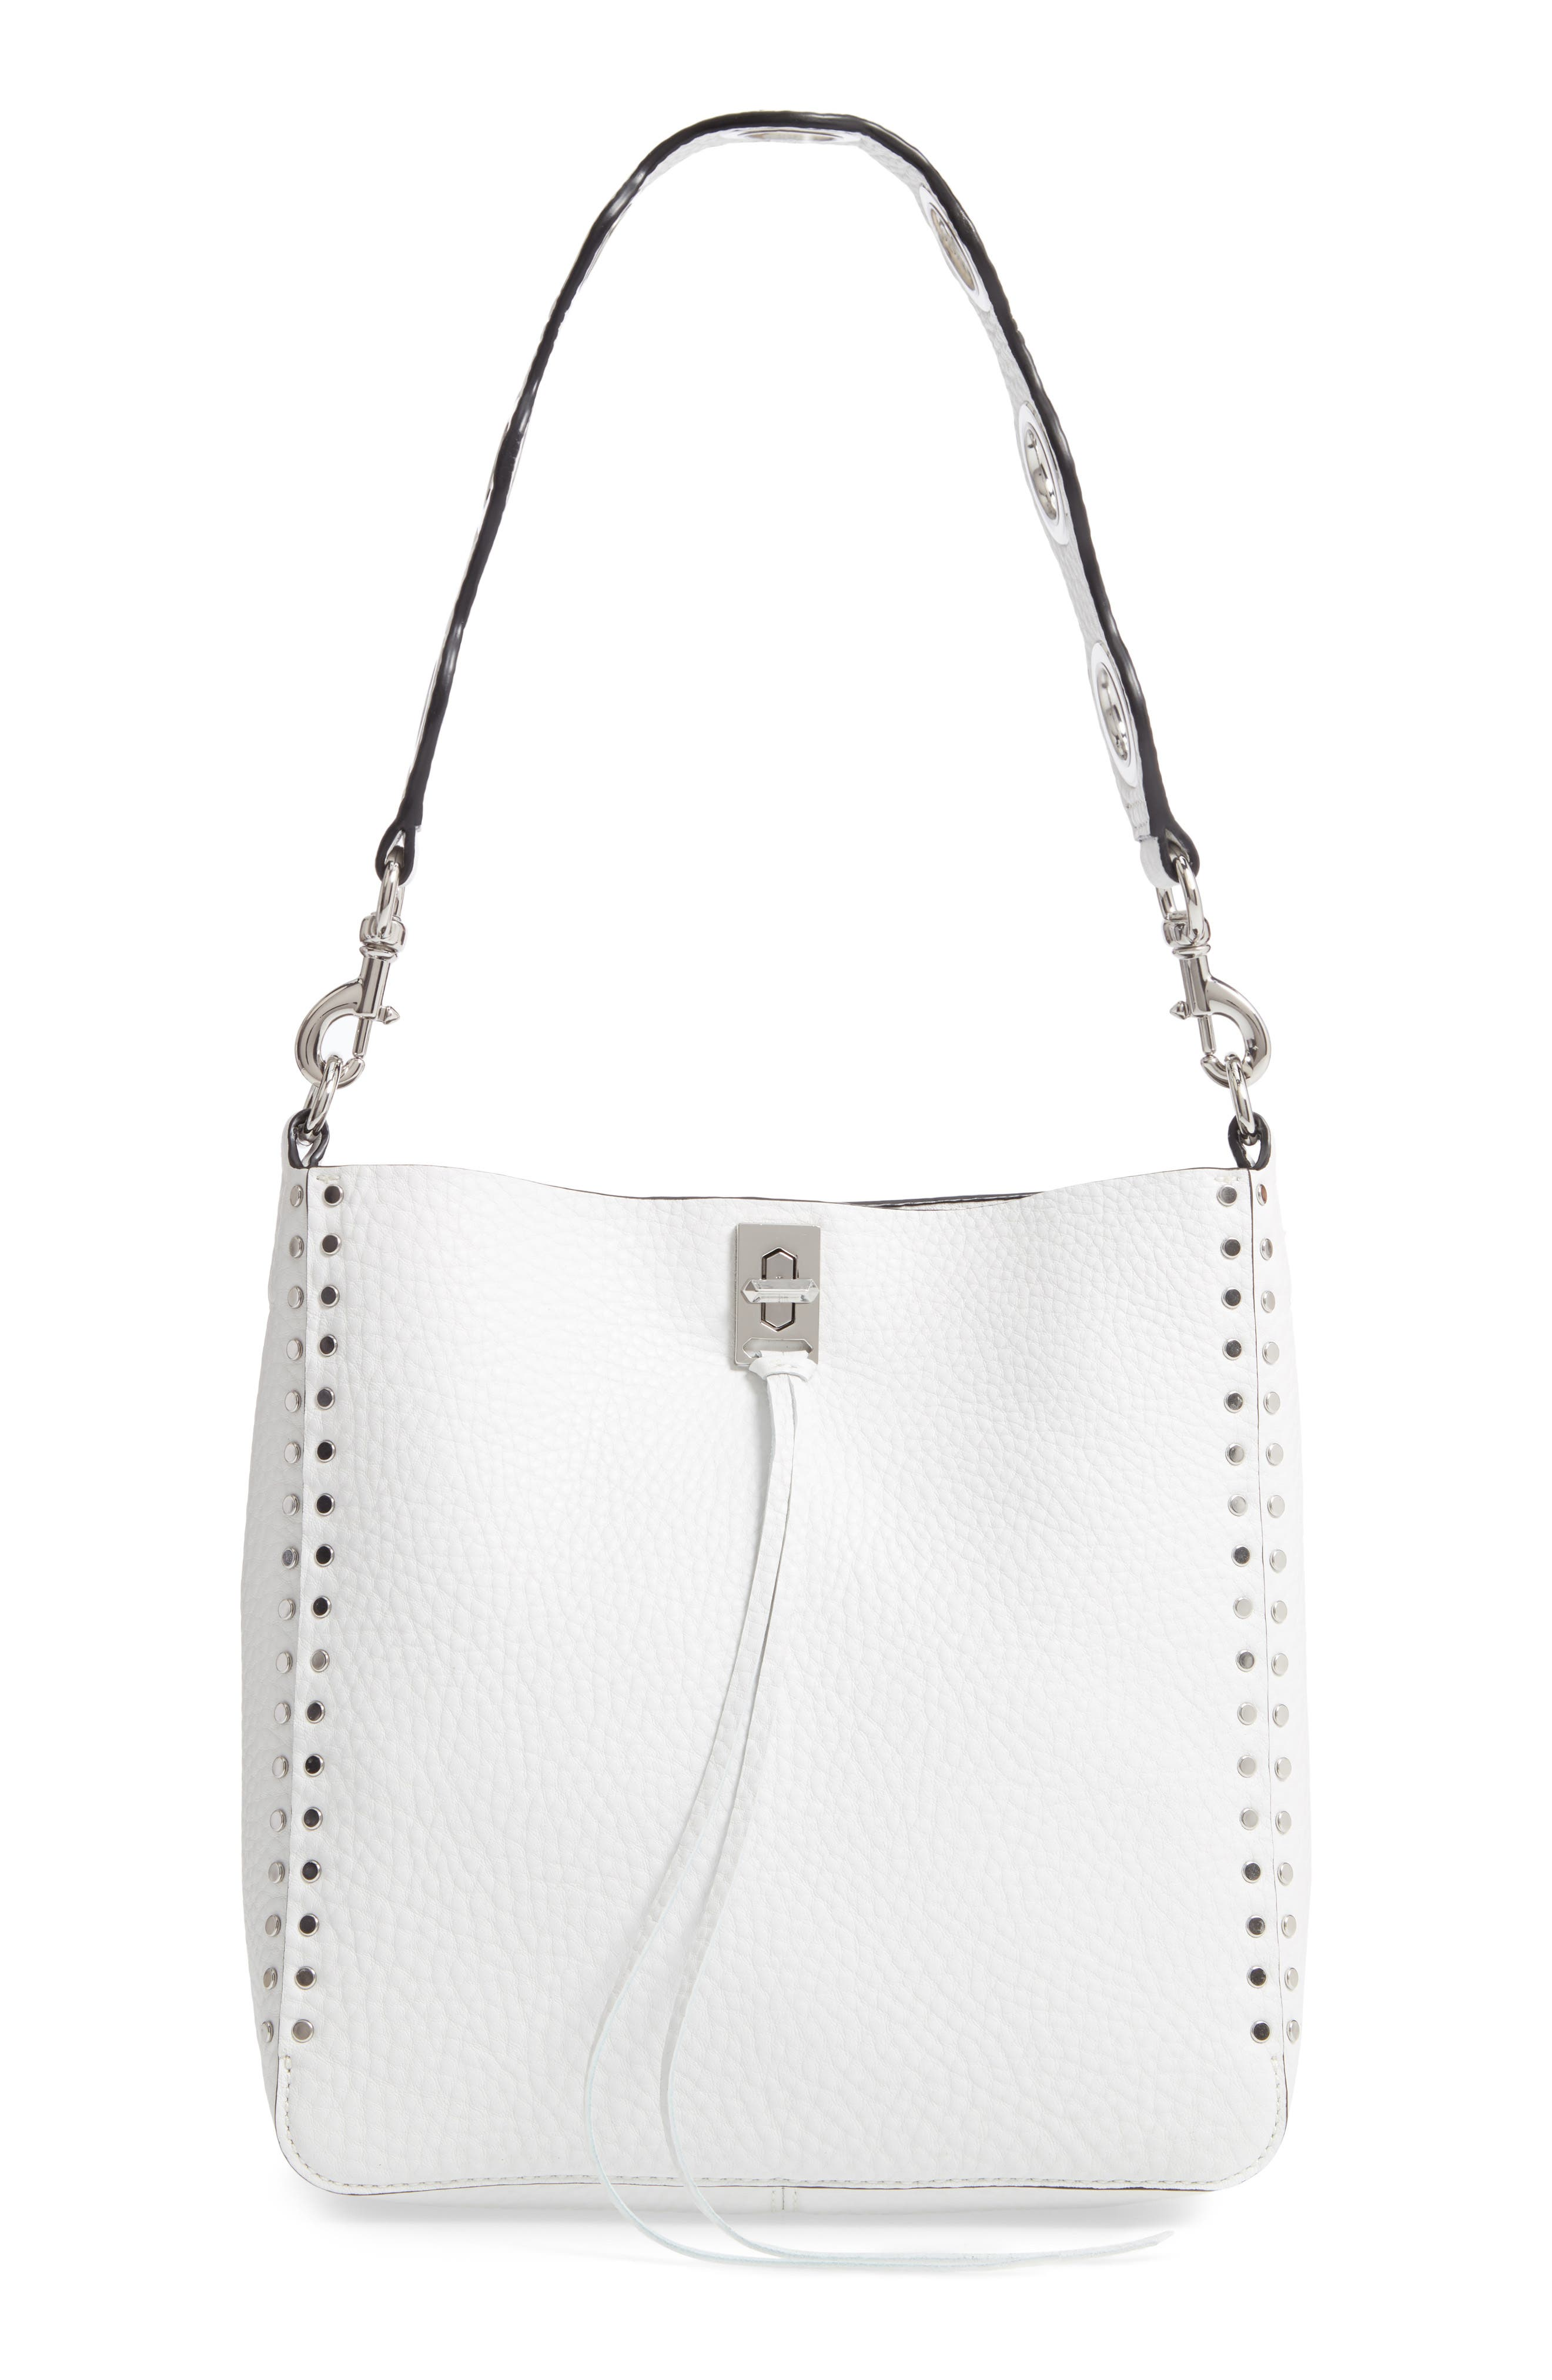 REBECCA MINKOFF, Small Studded Leather Feed Bag, Main thumbnail 1, color, OPTIC WHITE